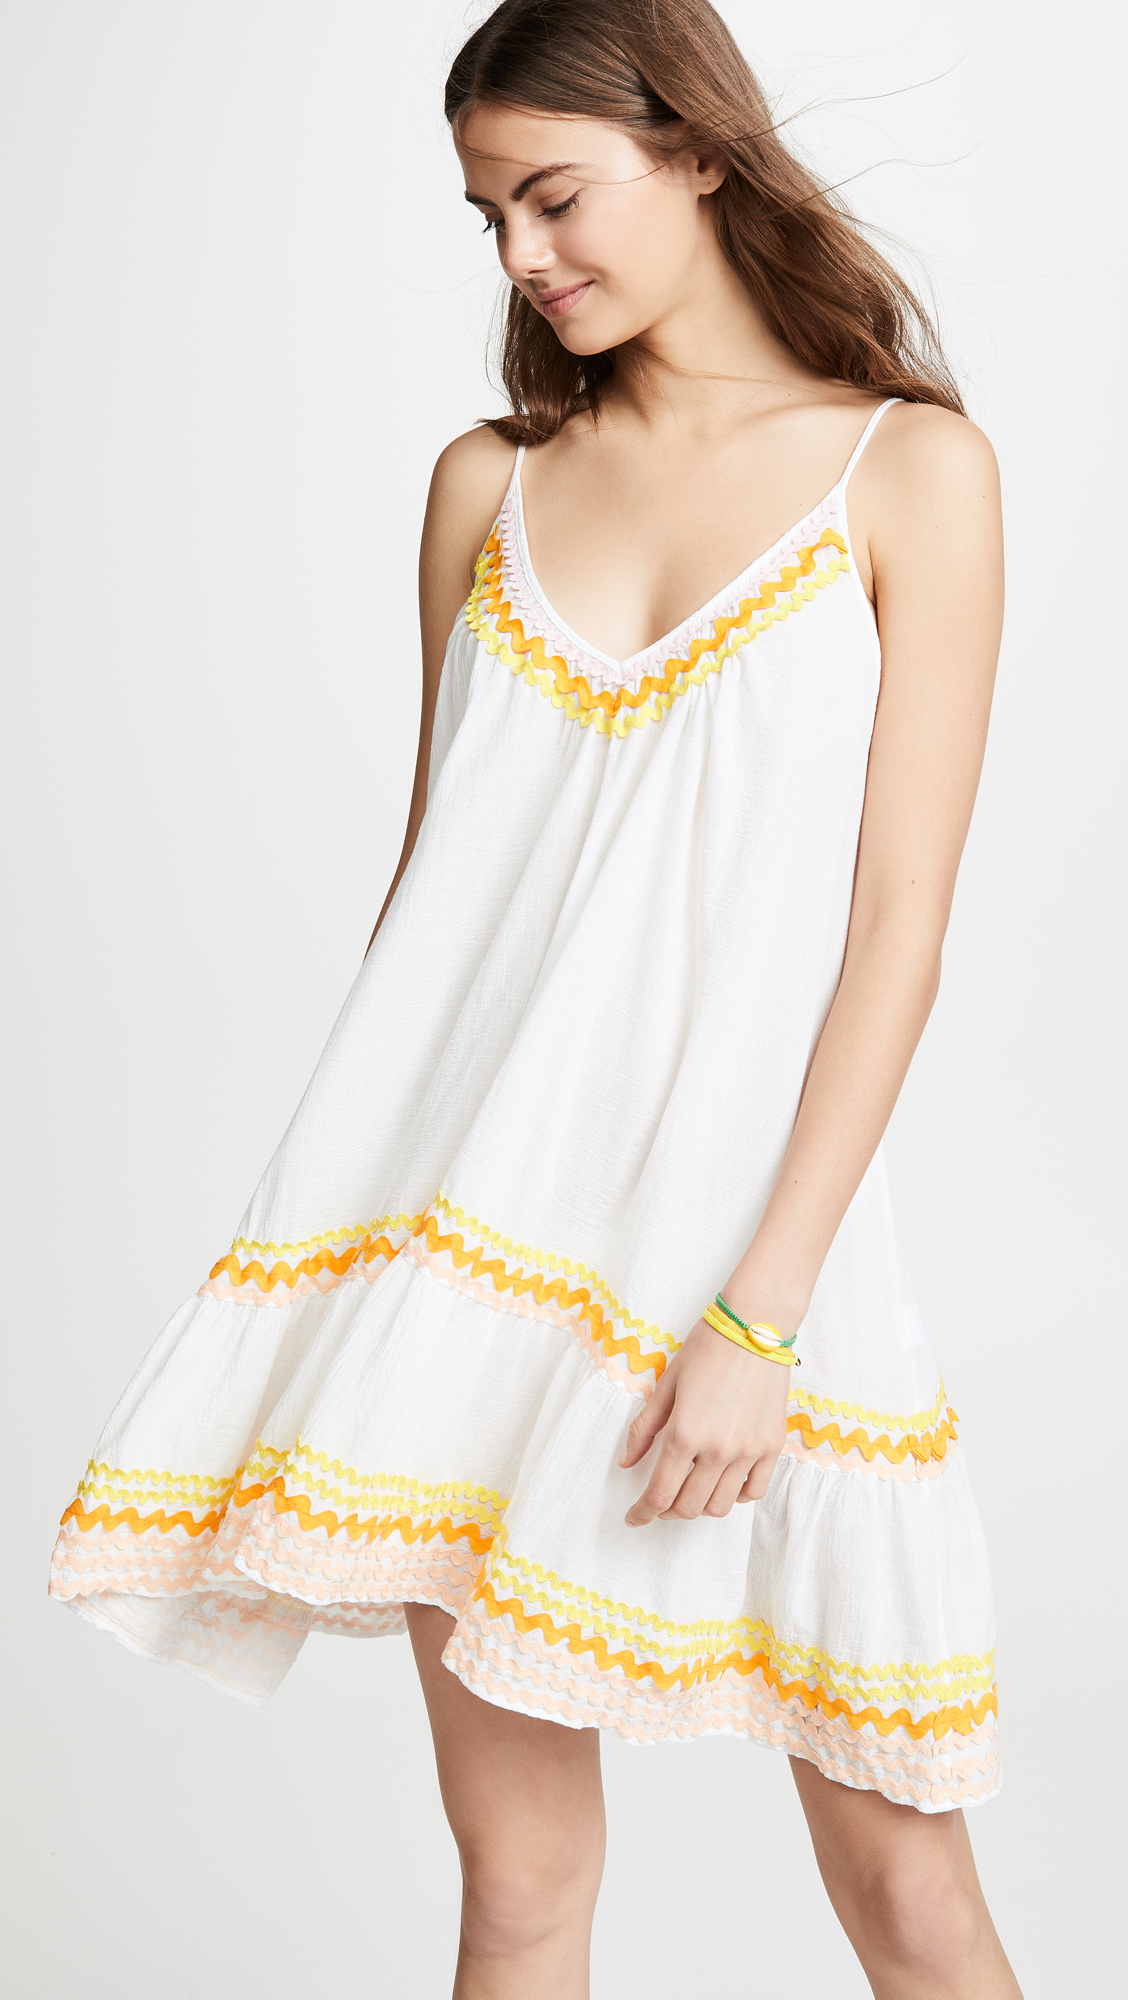 A Flowy Summer Dress - Whether you're poolside or spending the day at the beach, this dress-meets-cover-up is the perfect piece to make you look put-together while having fun in the sun.